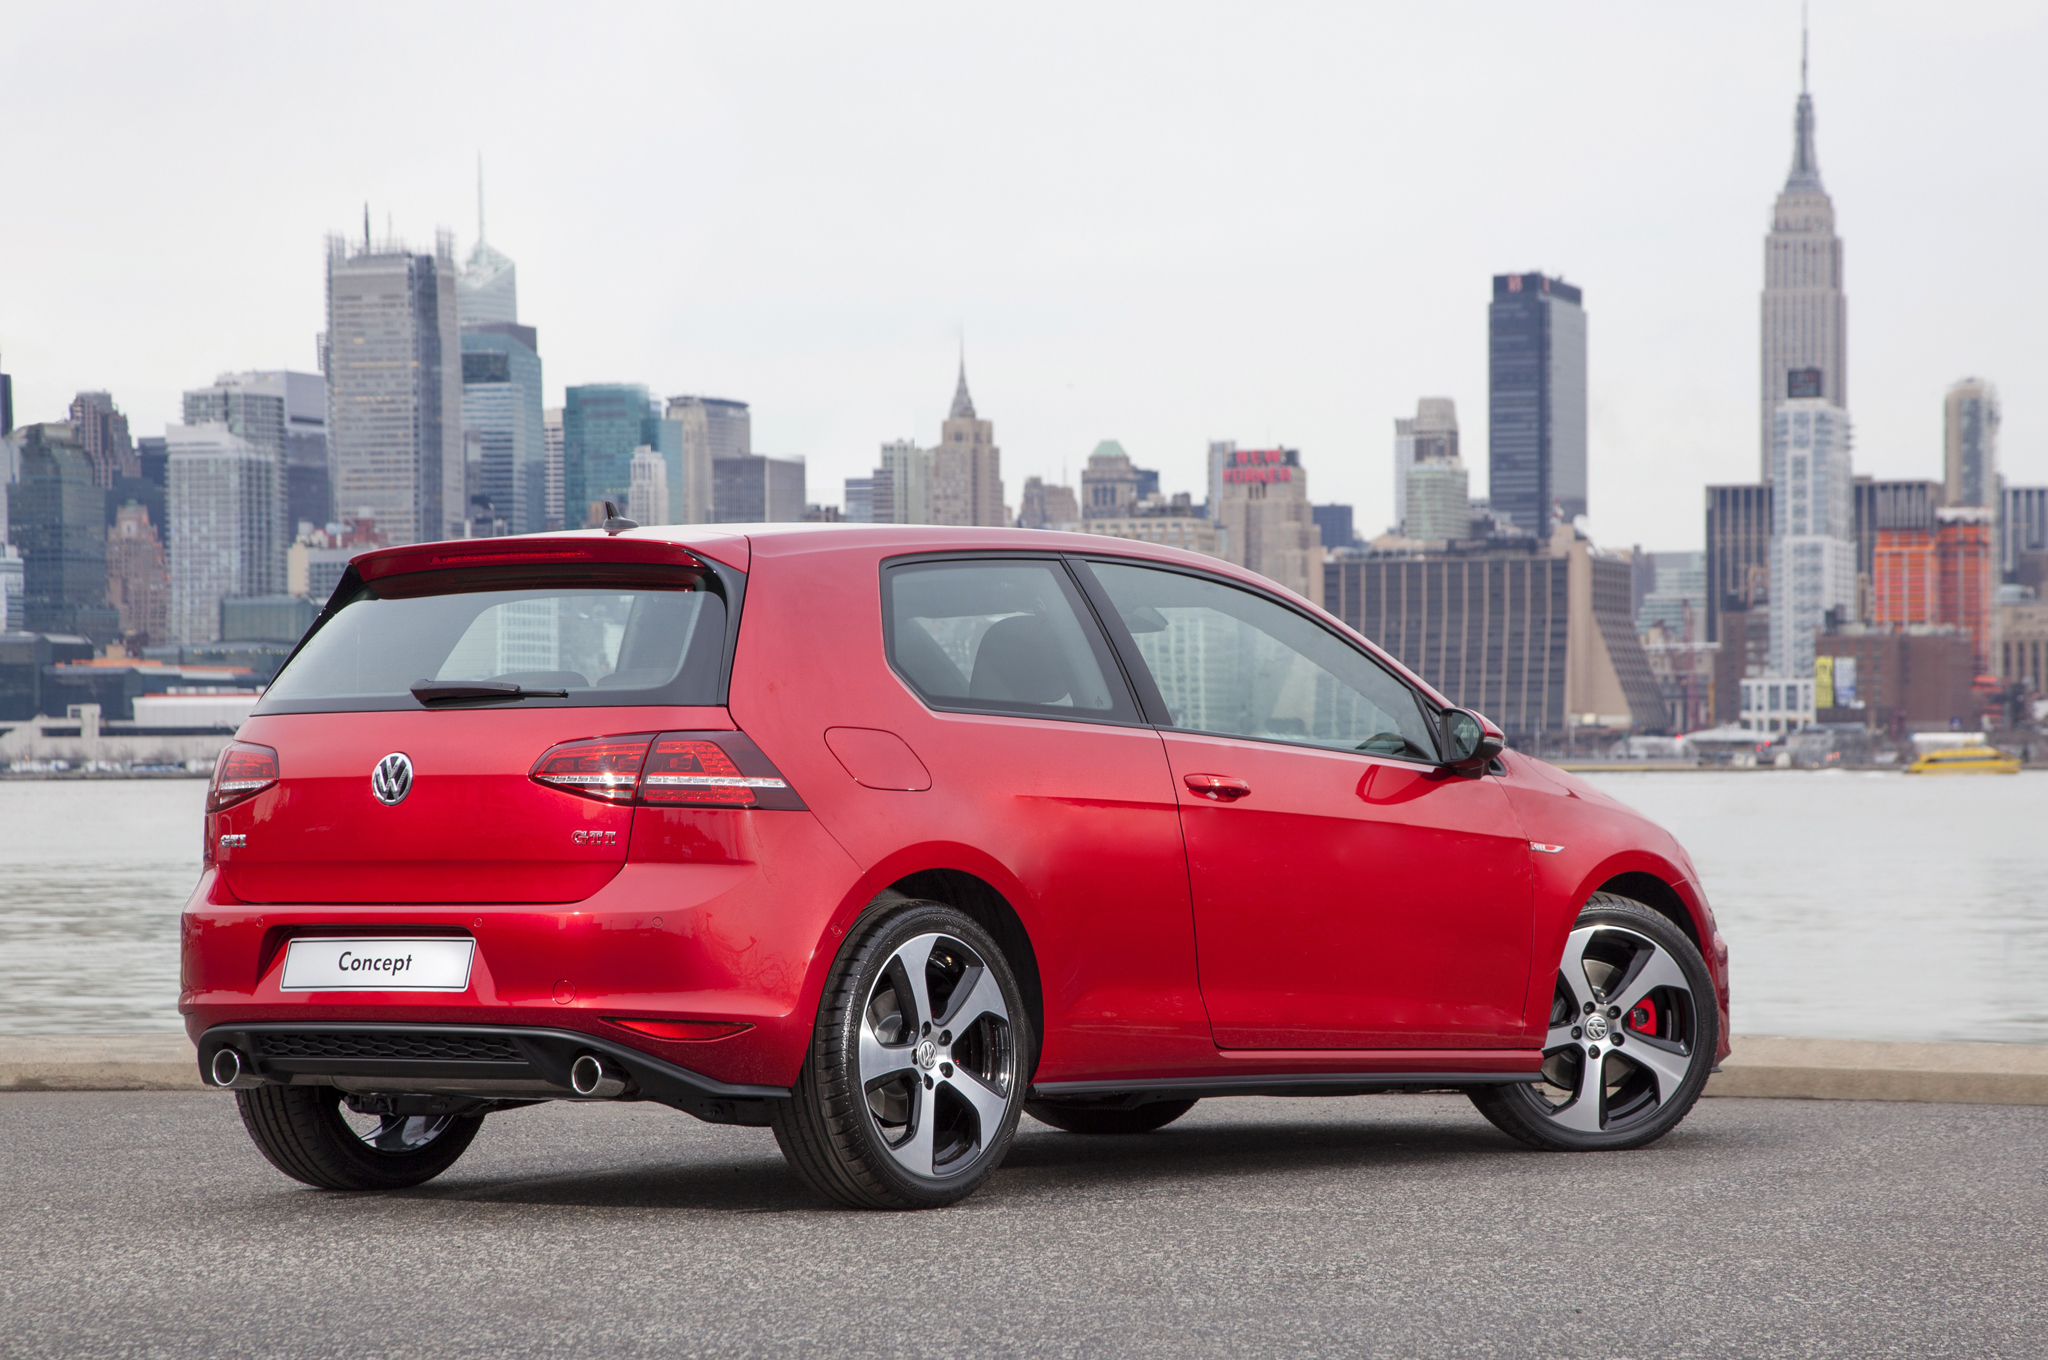 2015 Volkswagen Golf Gti Rear Side (Photo 53 of 55)